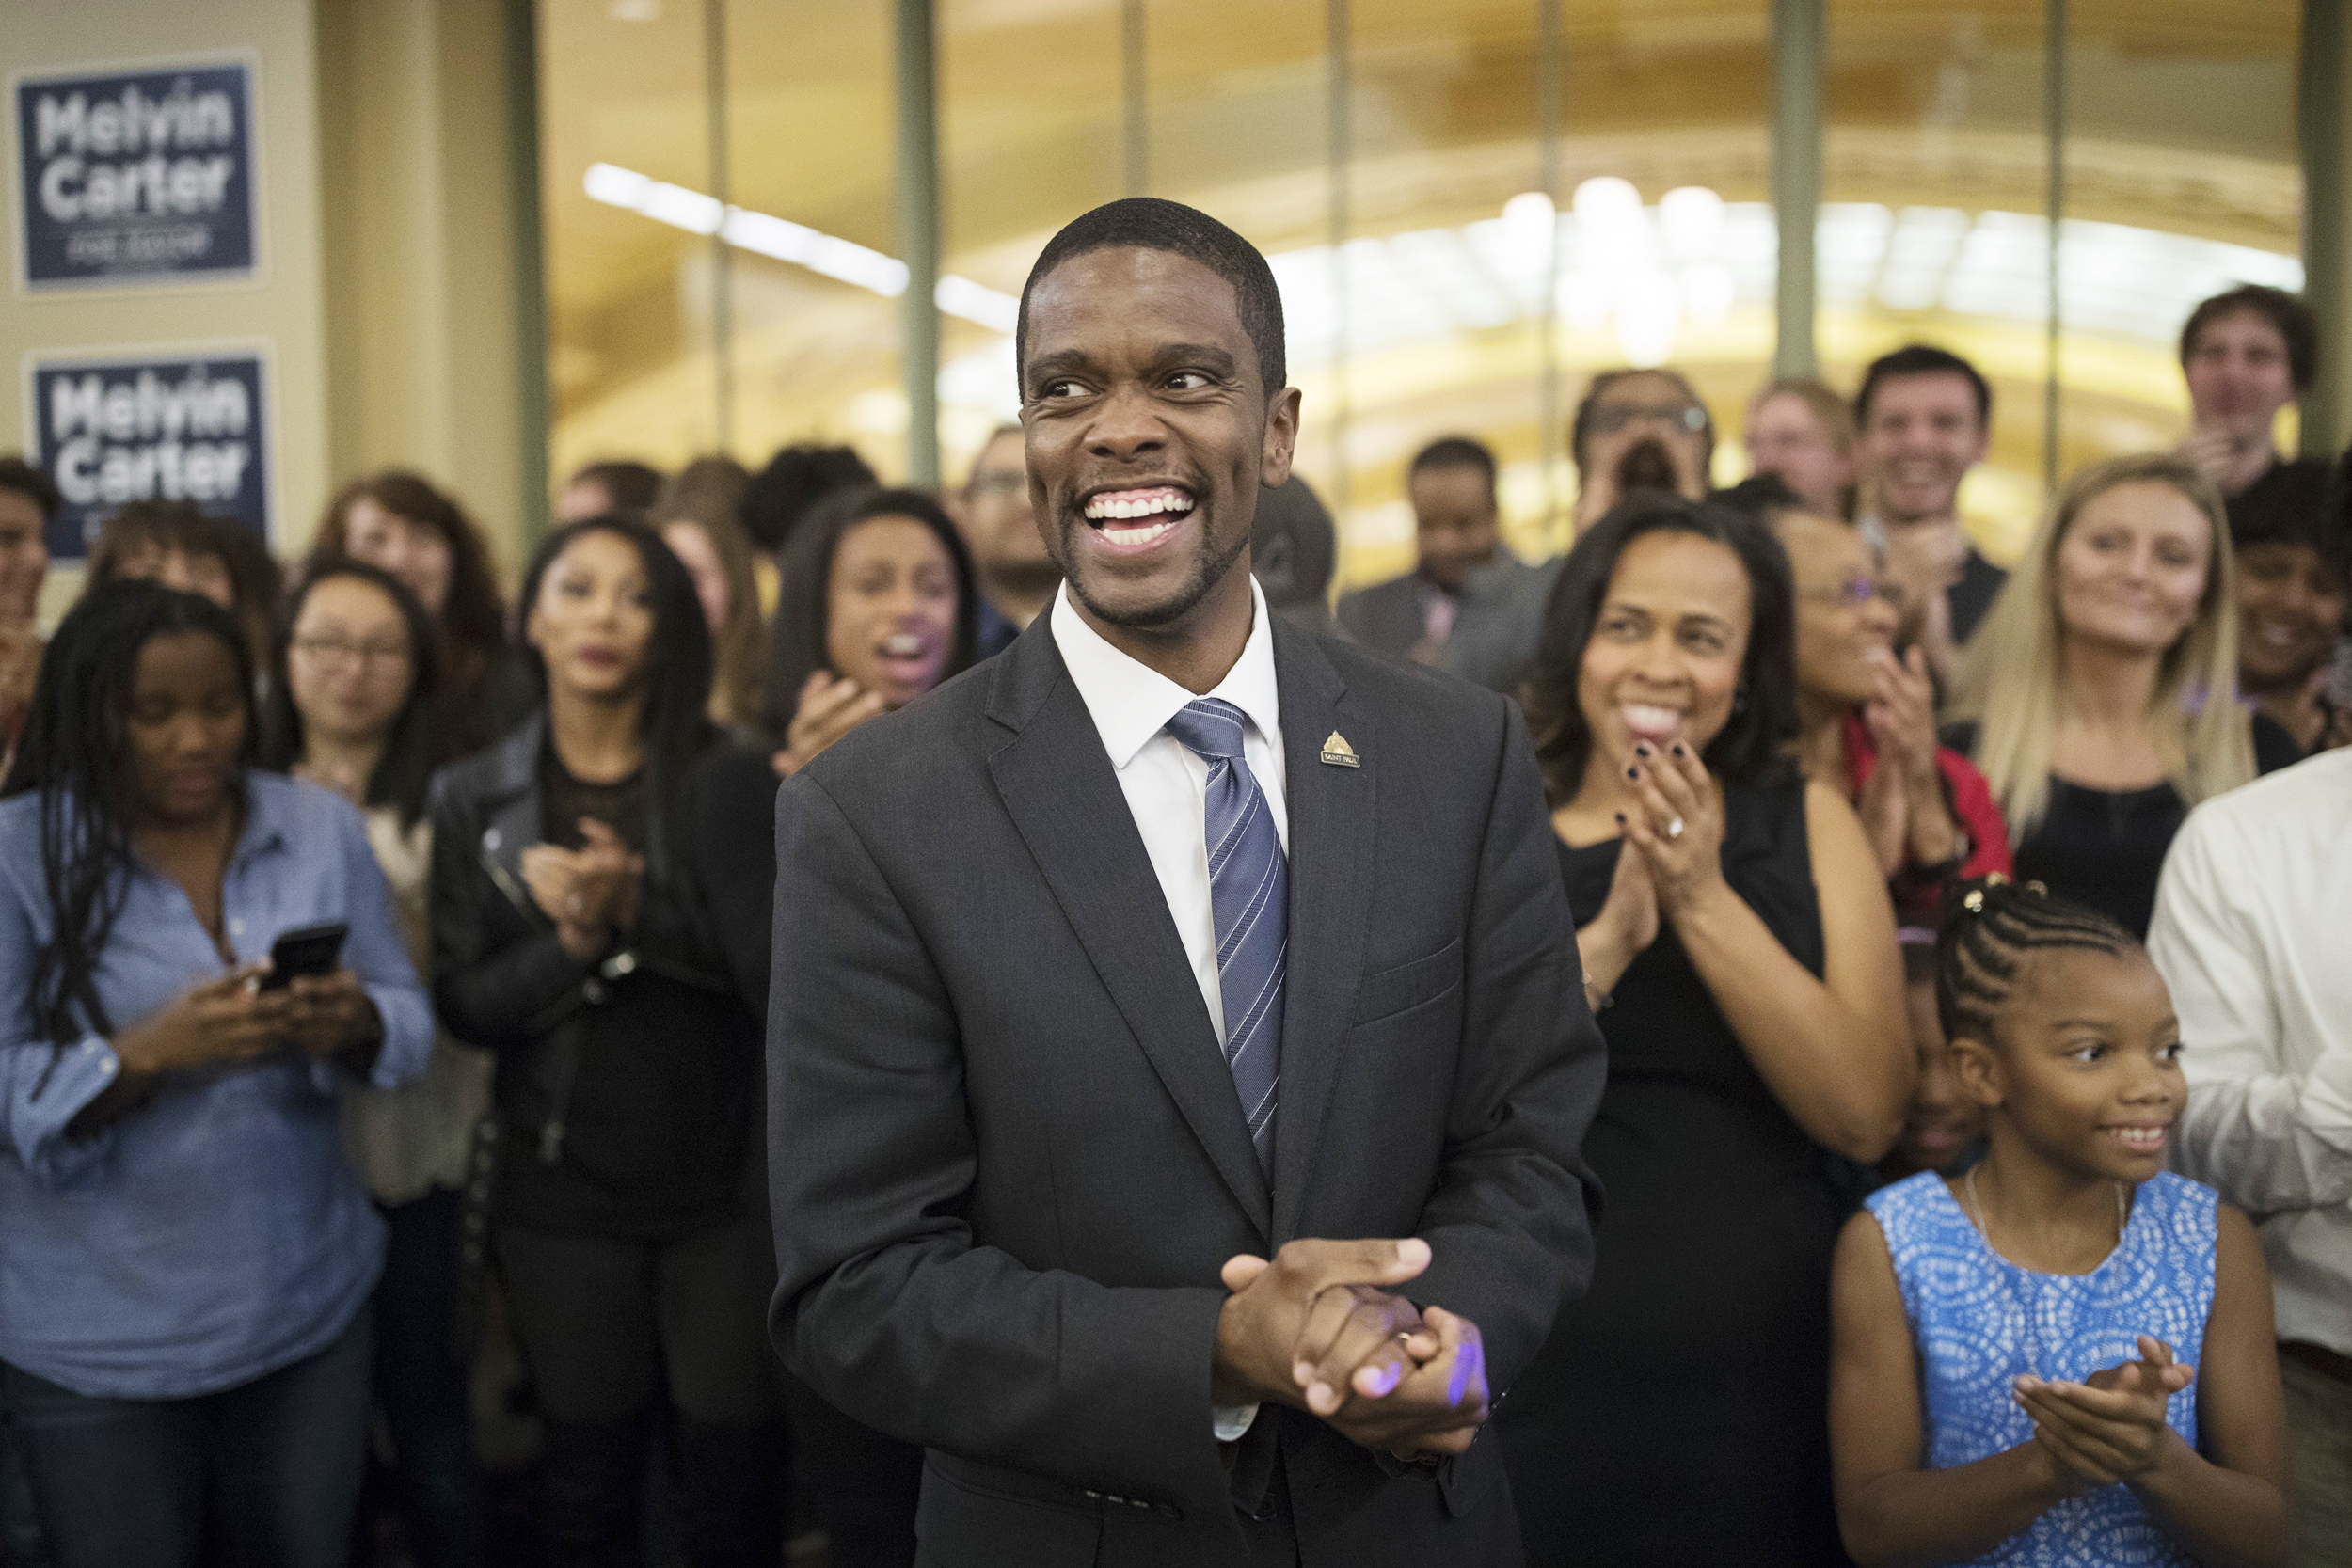 Image: St. Paul mayoral candidate Melvin Carter